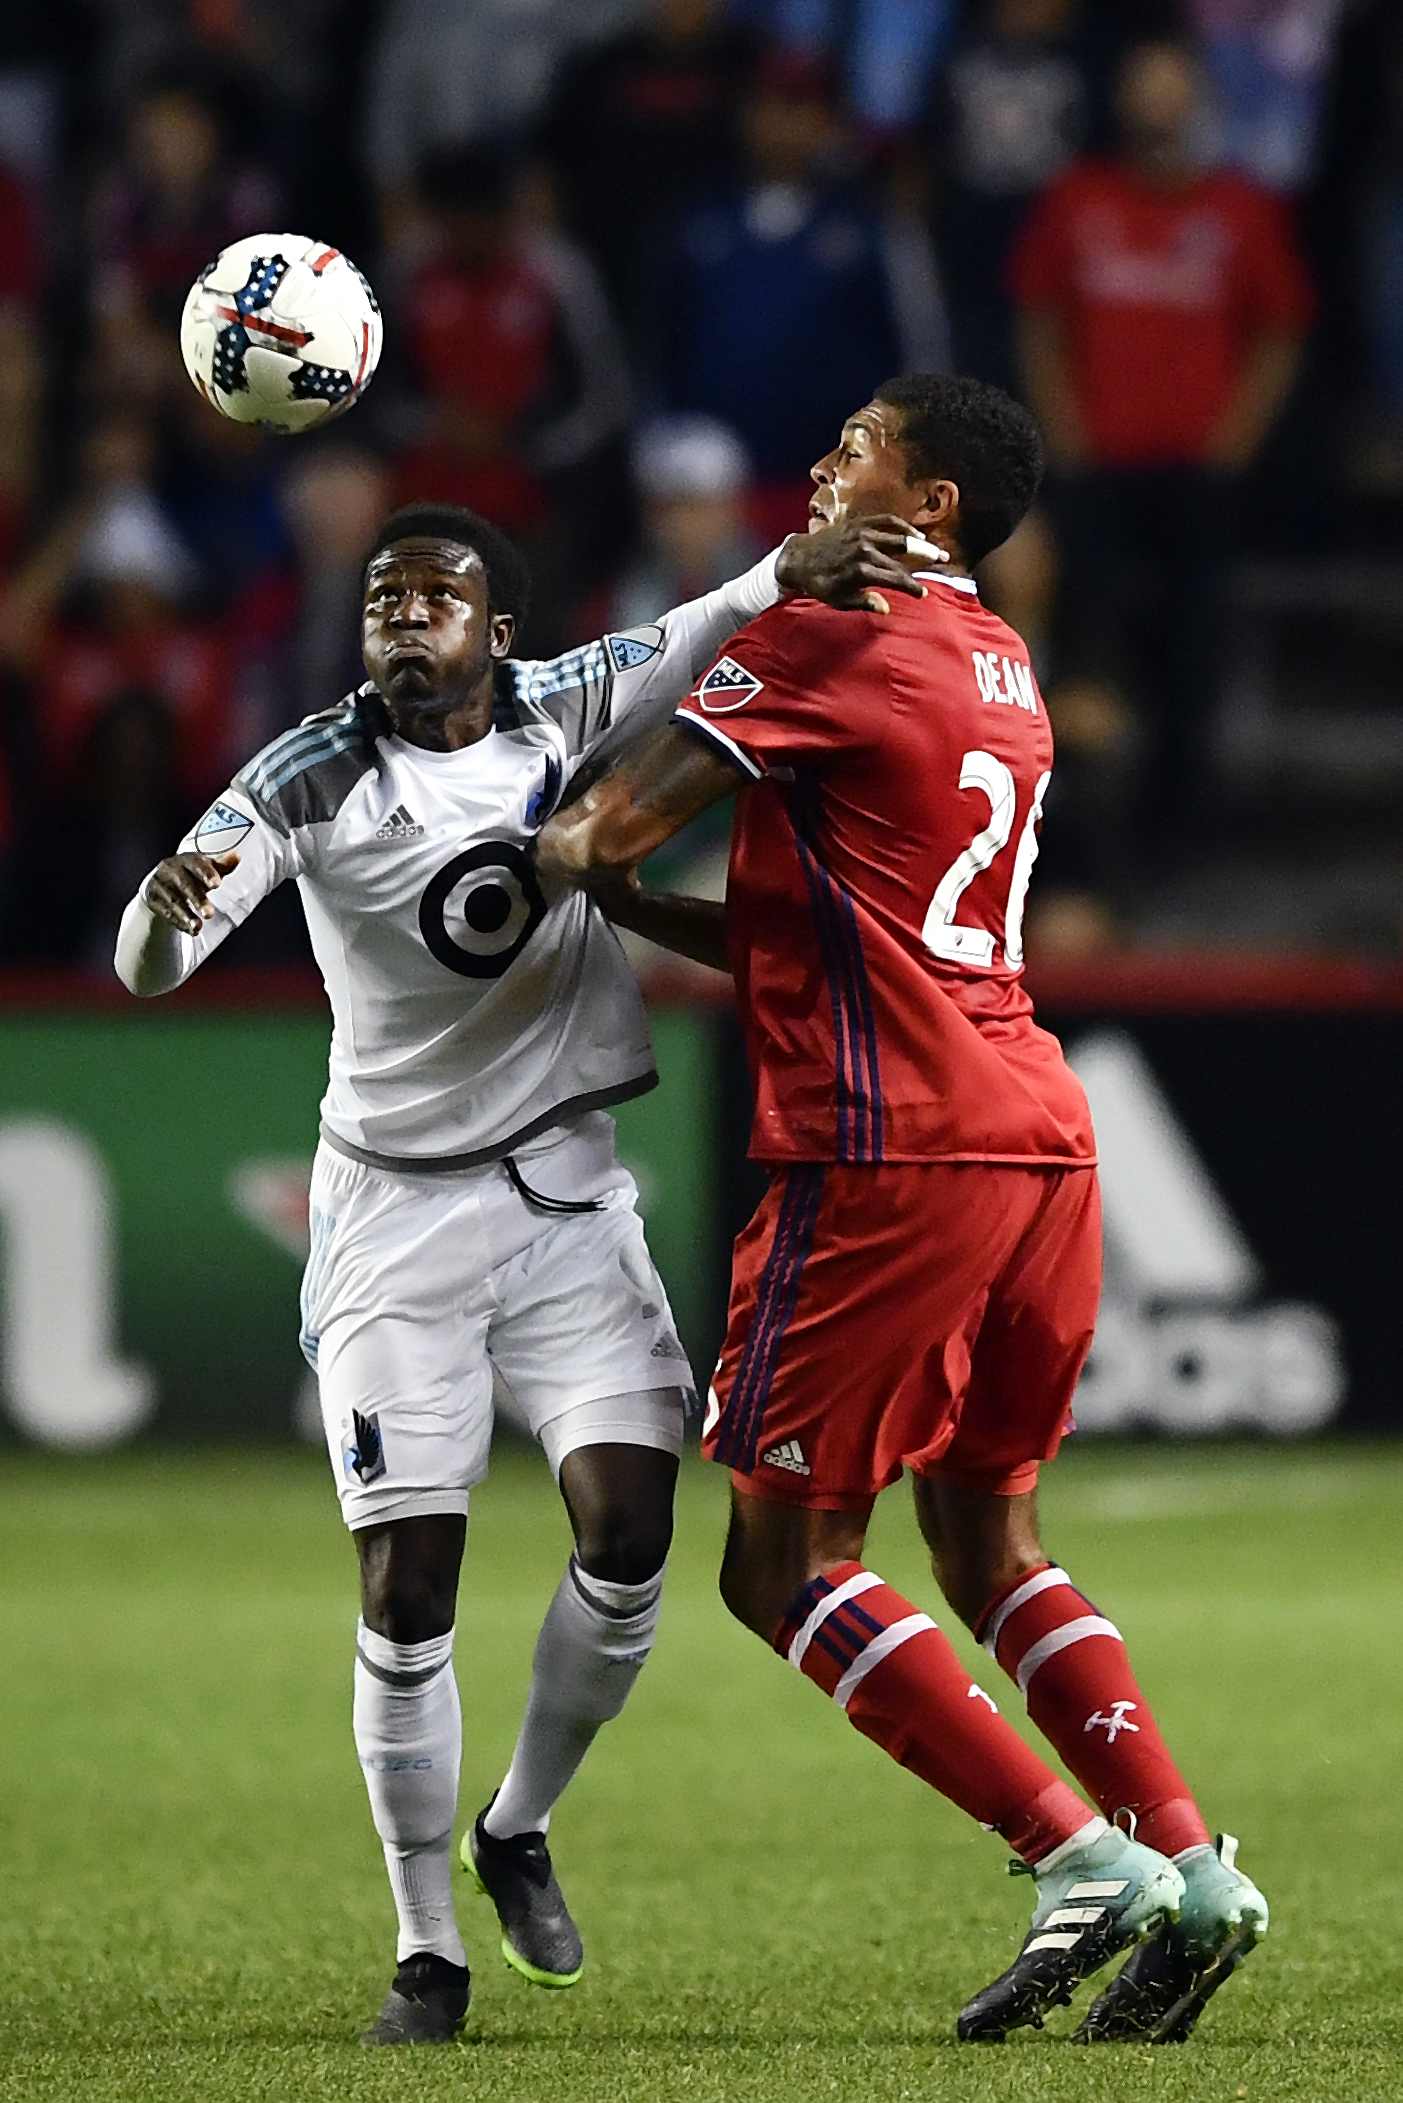 SOCCER: AUG 26 MLS - Minnesota United FC at Chicago Fire